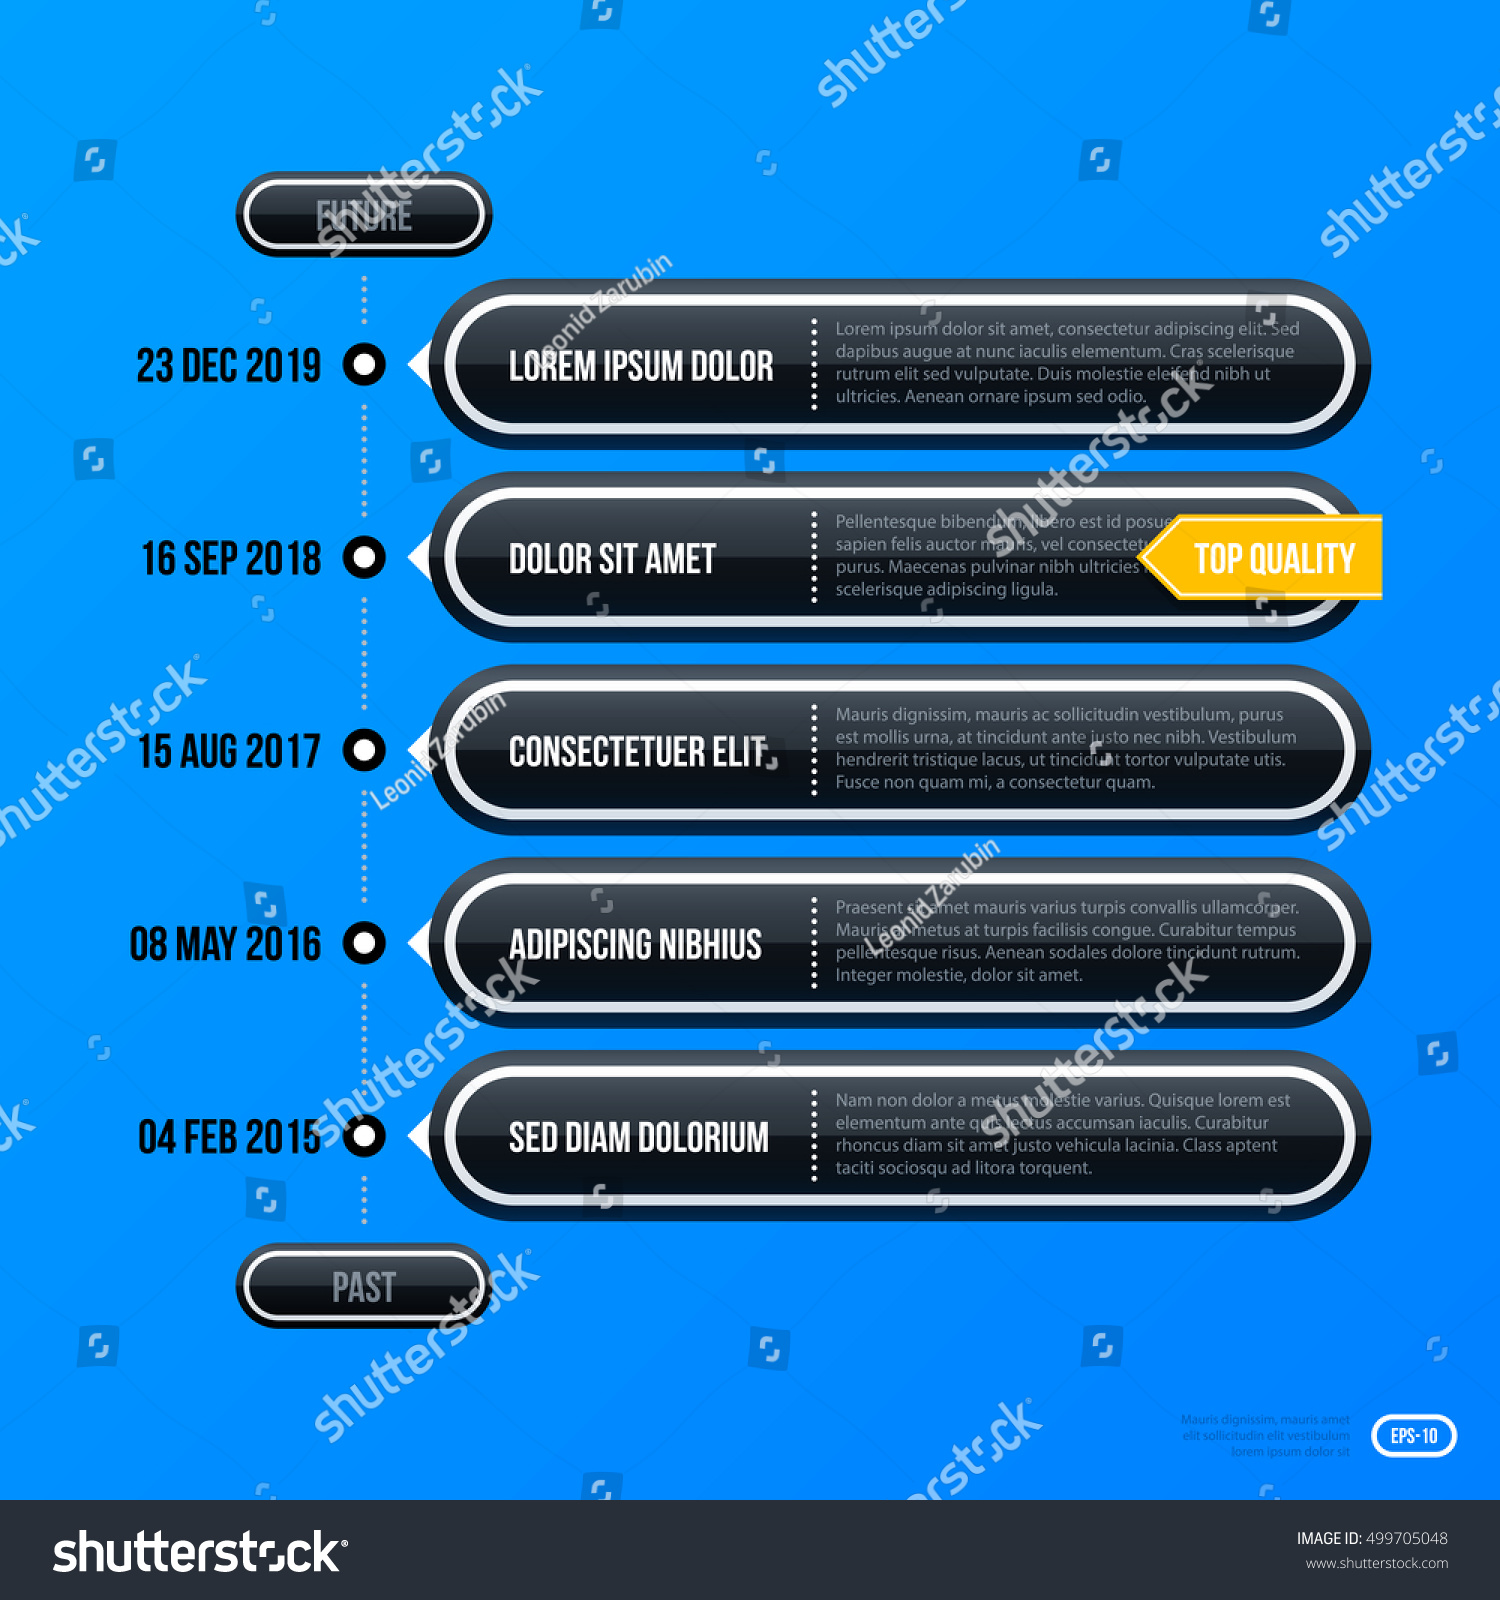 Corporate Business Timeline Template On Bright Stock Vector - Business timeline template